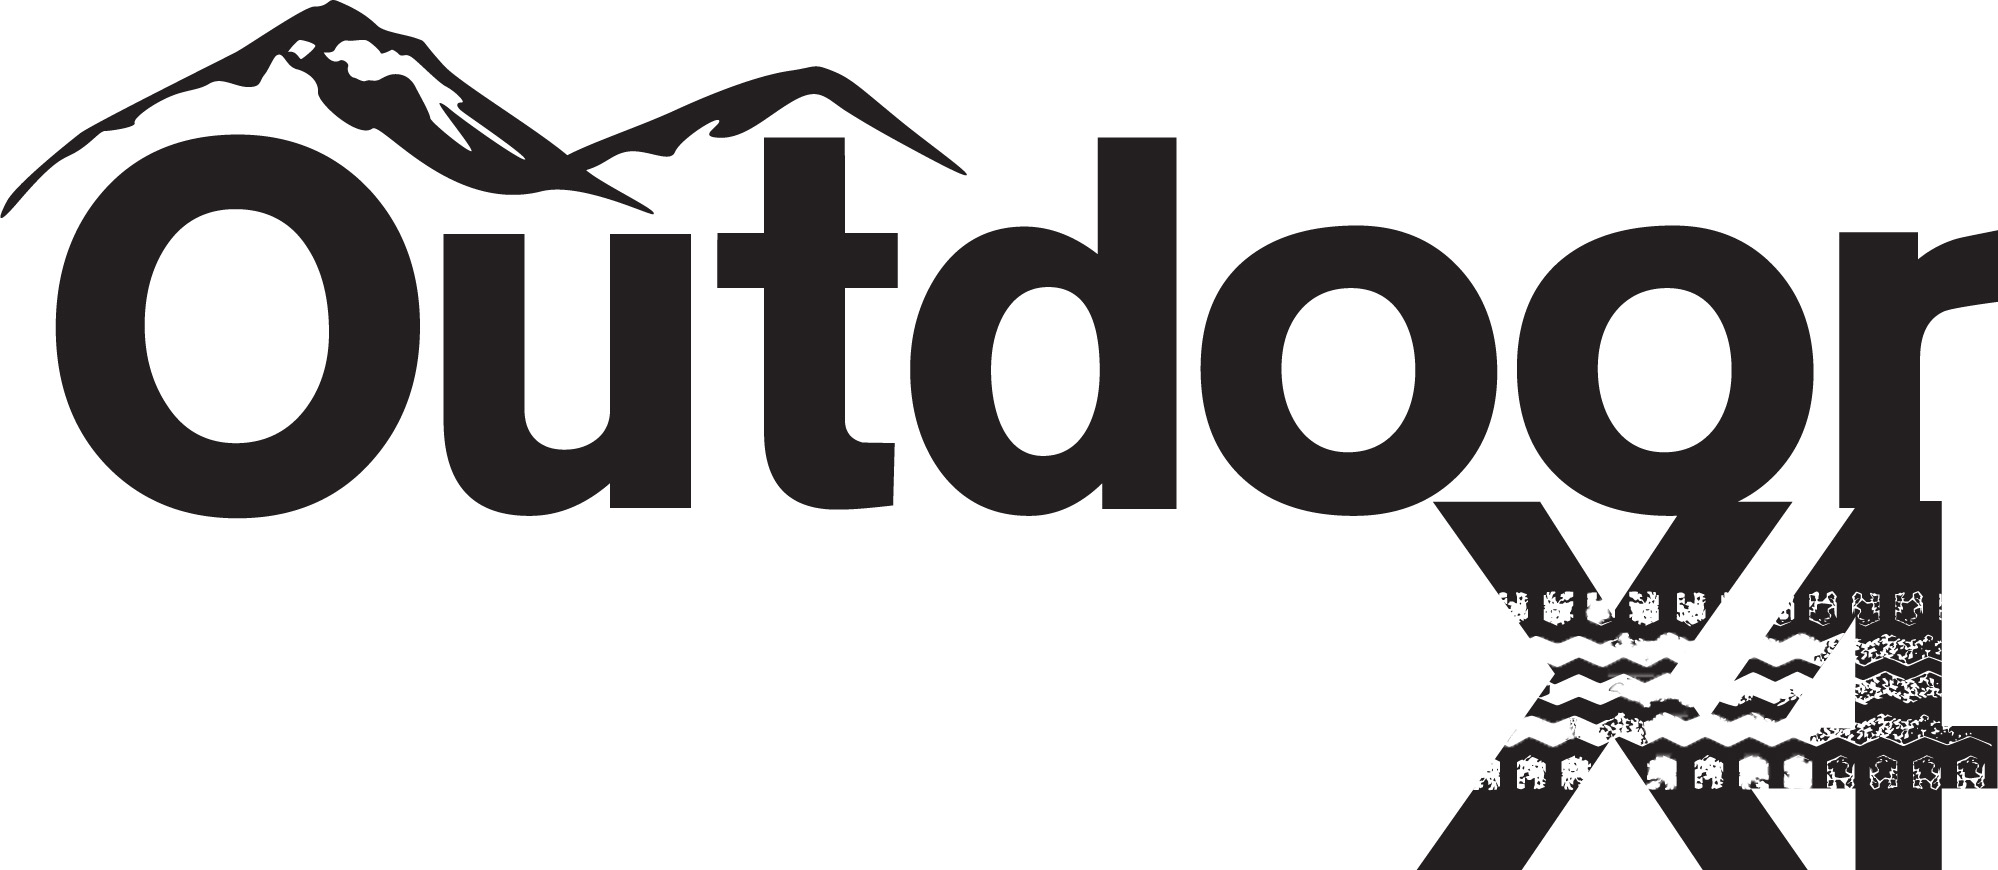 4x4 vehicles outdoor adventure camping magazine outdoorx4